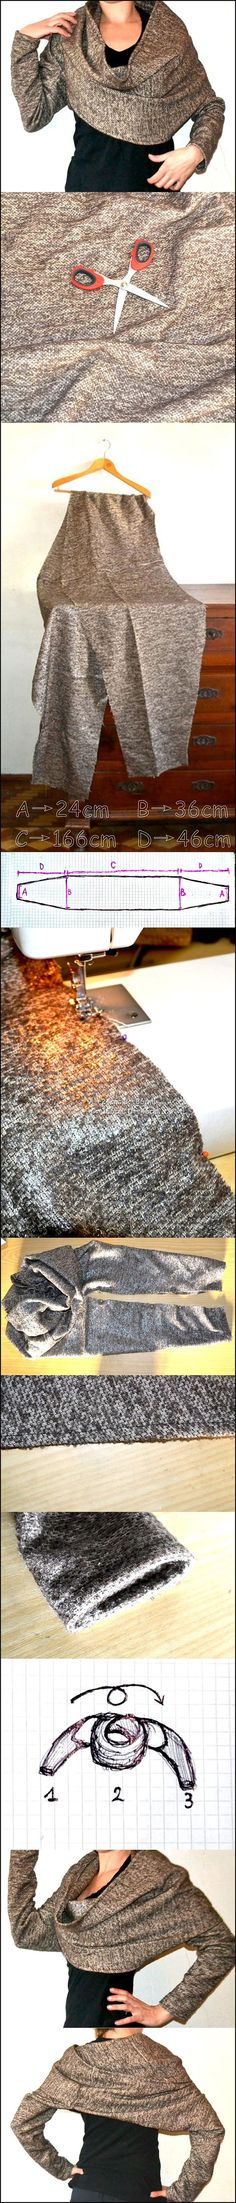 Make a wrap around shrug scarf bolero